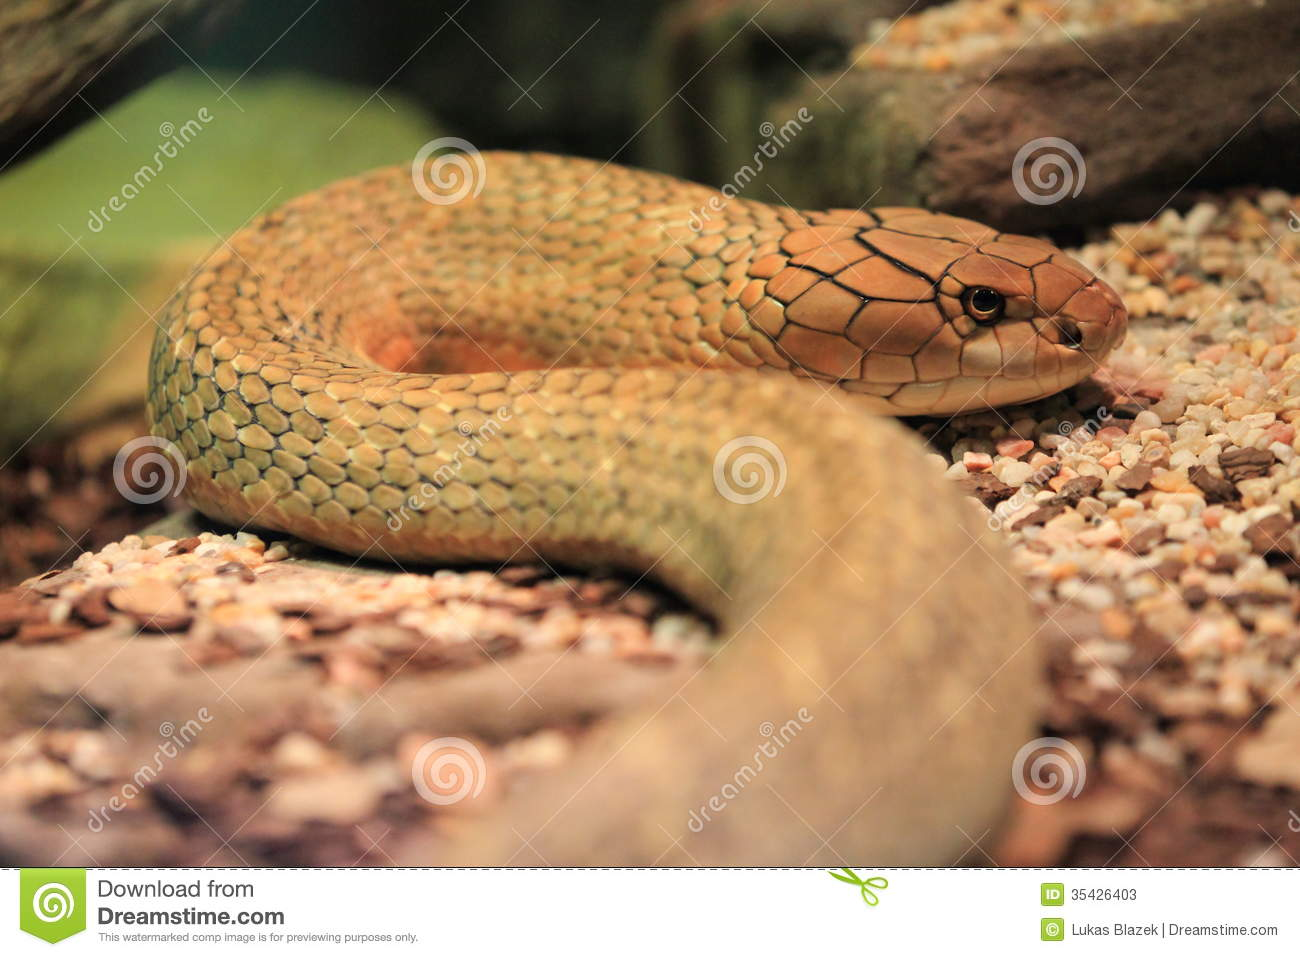 King cobra stock photos image 35426403 for Soil king productions